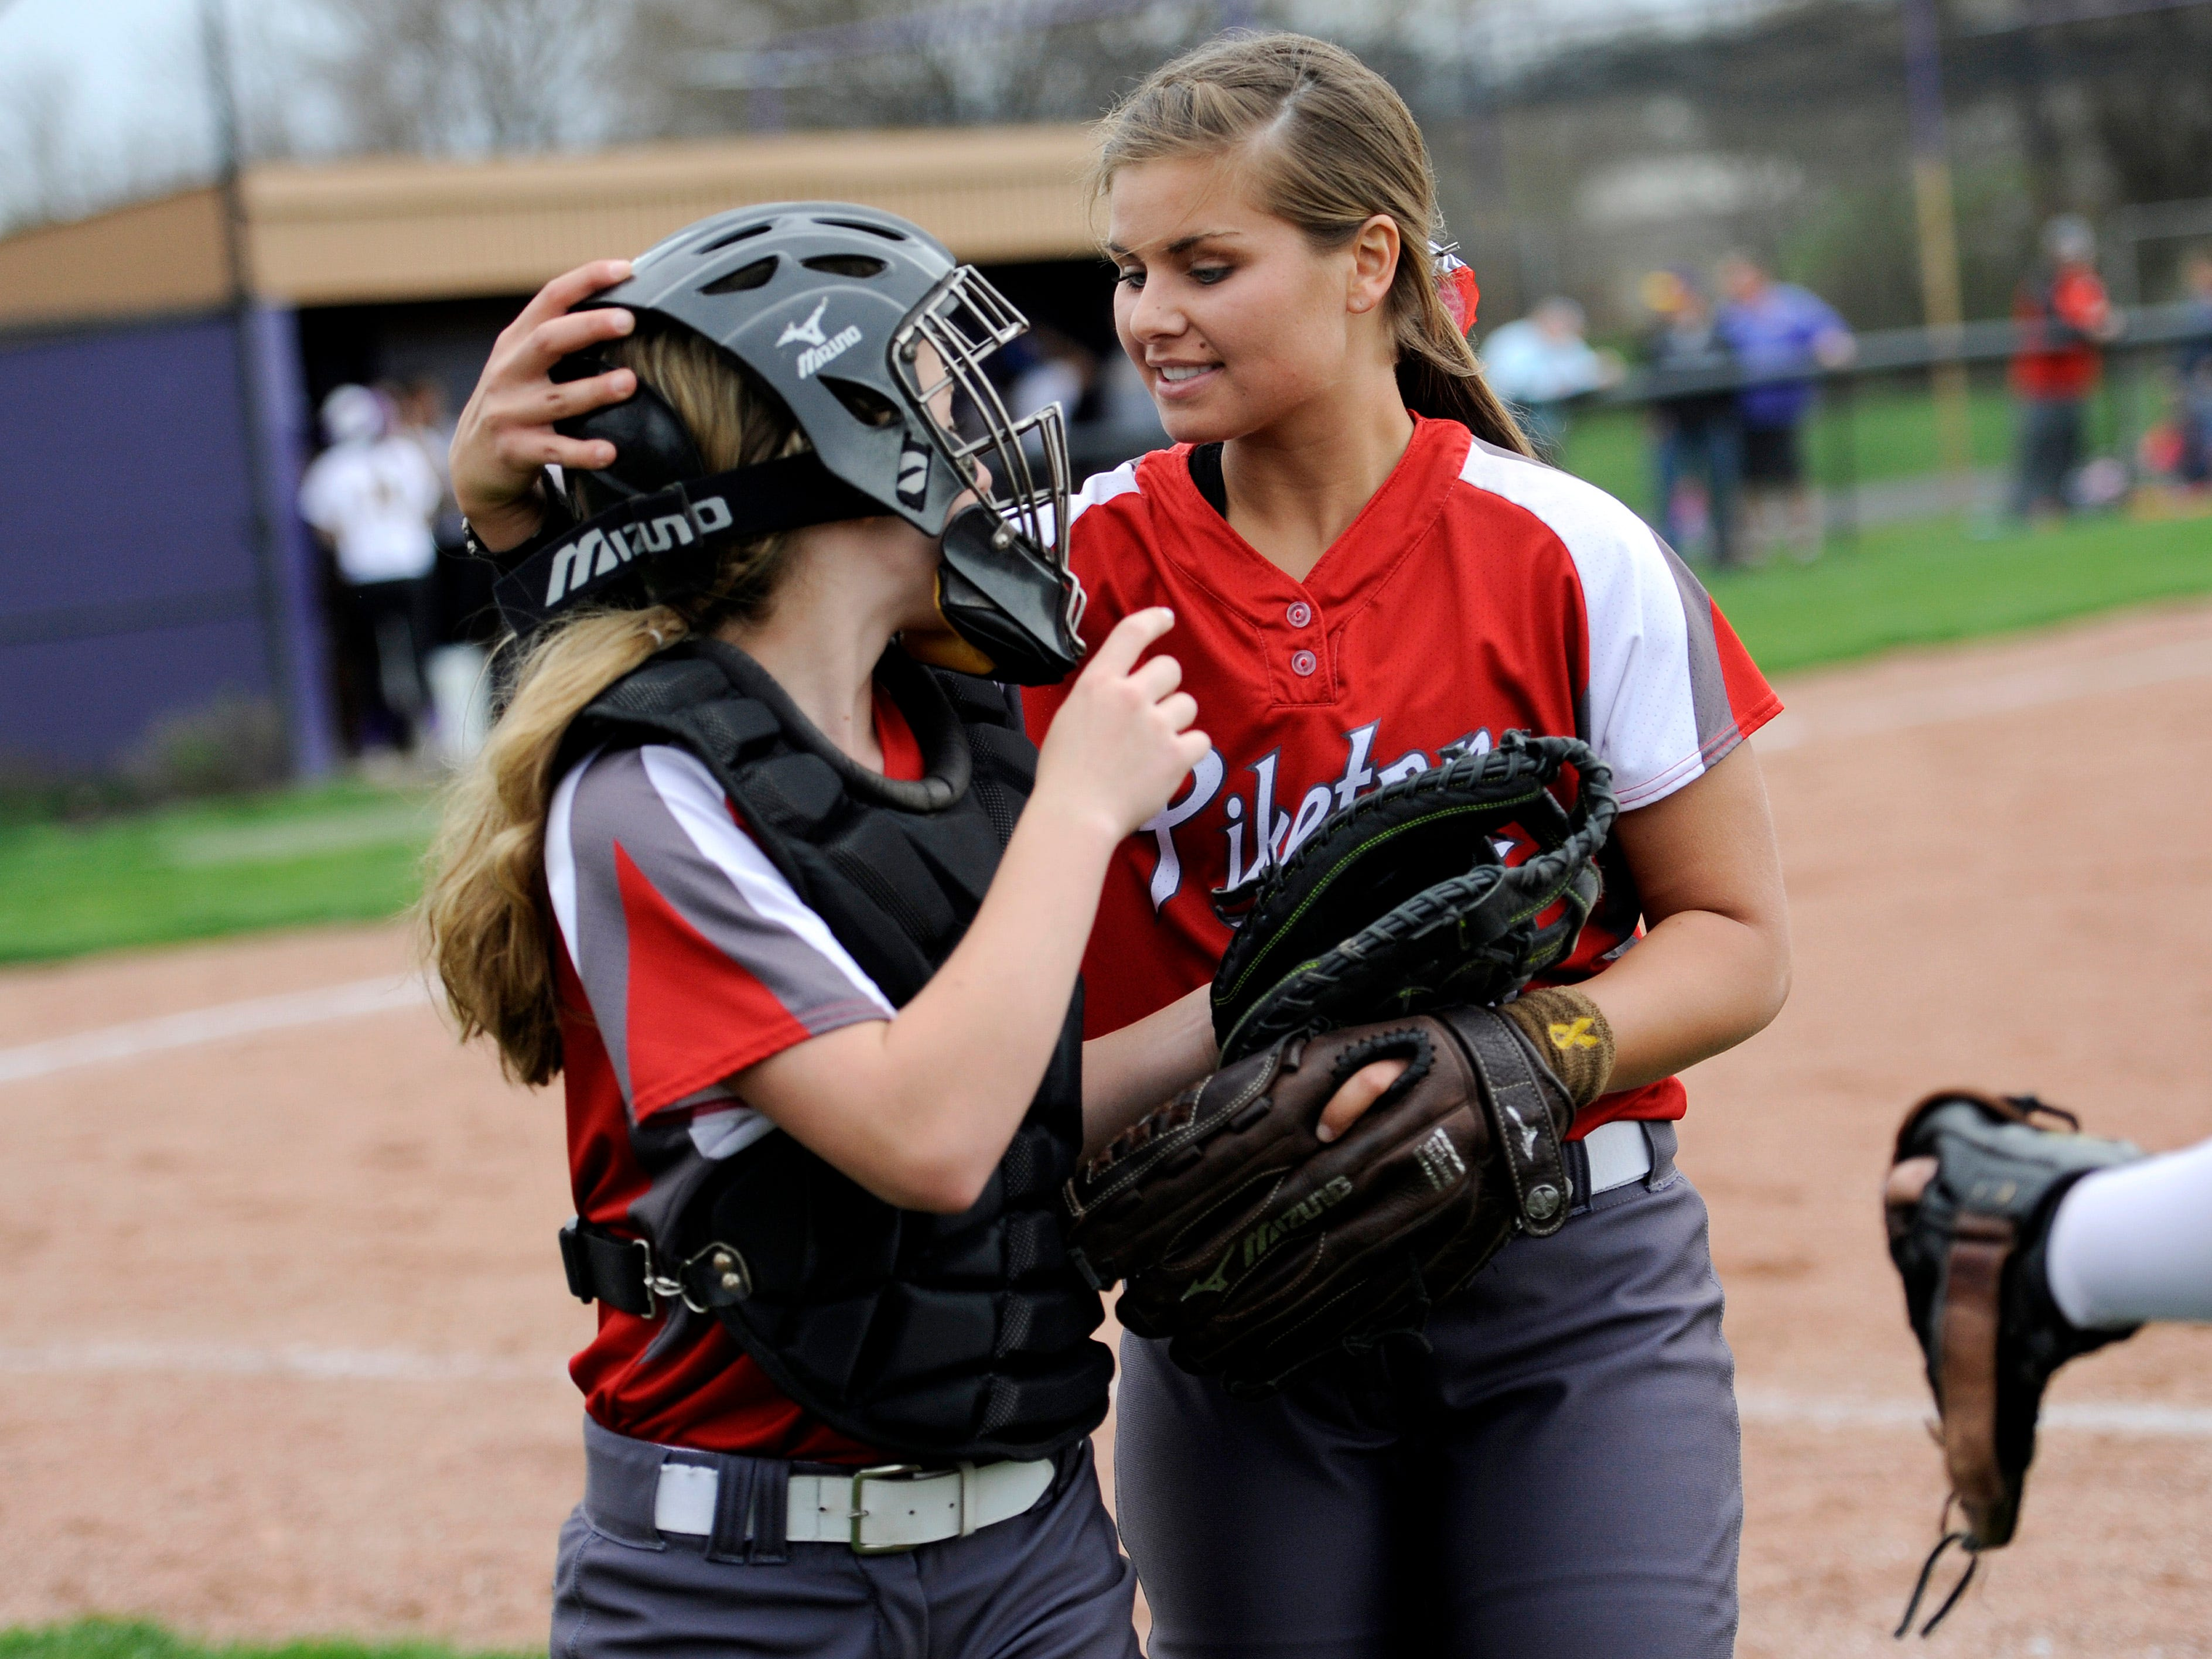 Piketon pitcher Adrien Dunn, right, talks to catcher Madi Conley after an inning during the game at Unioto on Wednesday. Piketon won, 8-1.